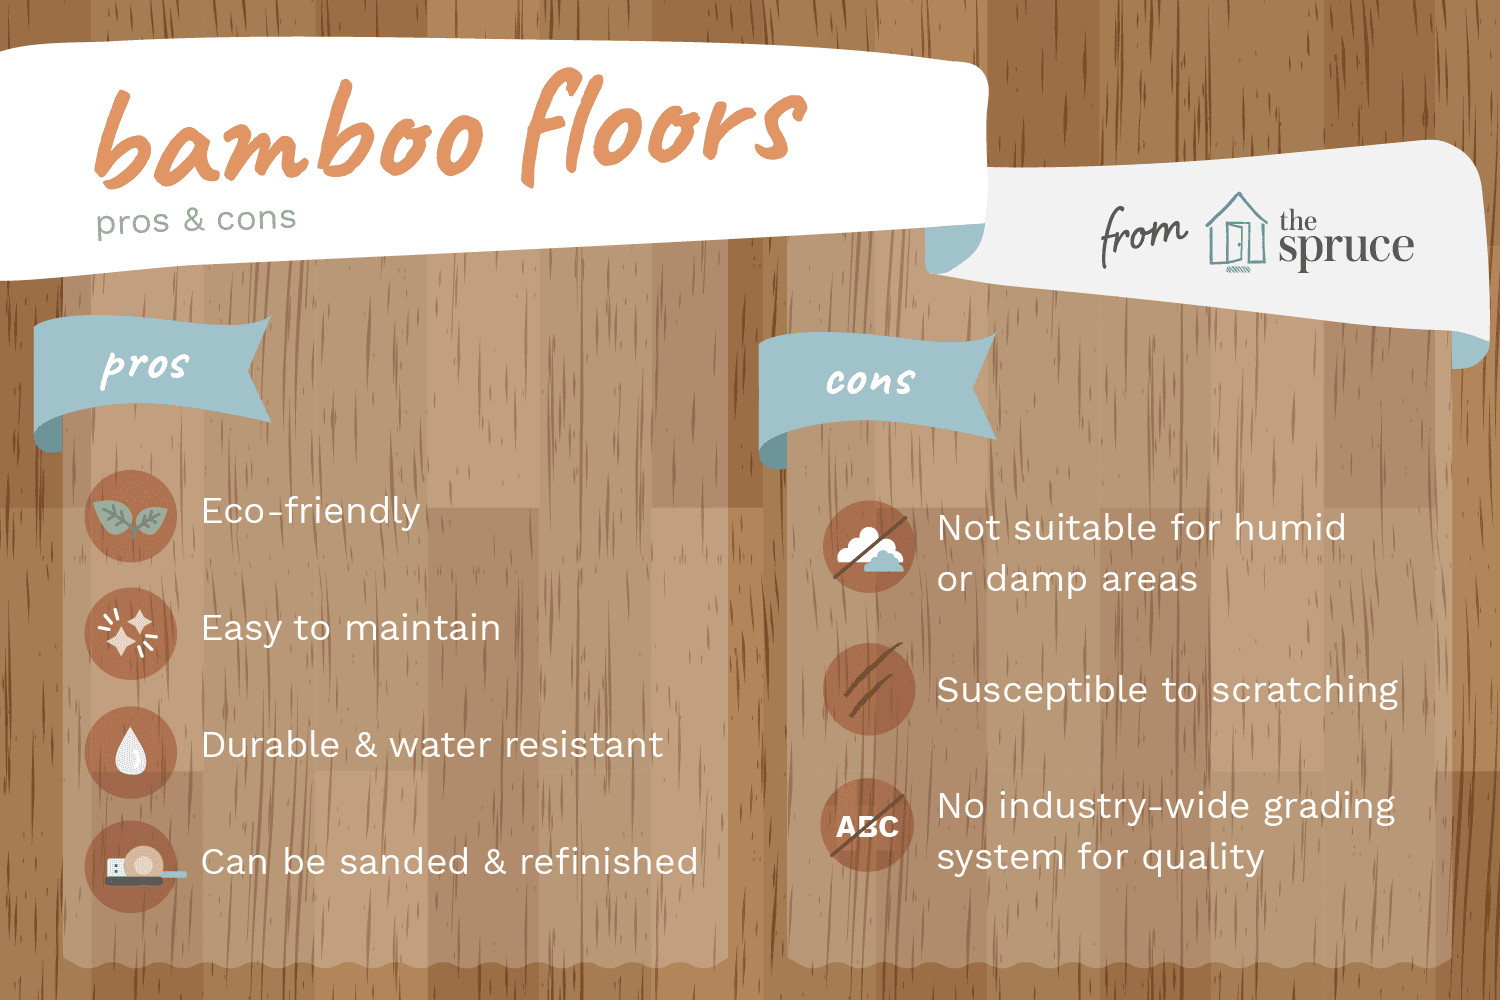 engineered hardwood floor care and maintenance of the advantages and disadvantages of bamboo flooring inside benefits and drawbacks of bamboo floors 1314694 v3 5b102fccff1b780036c0a4fa